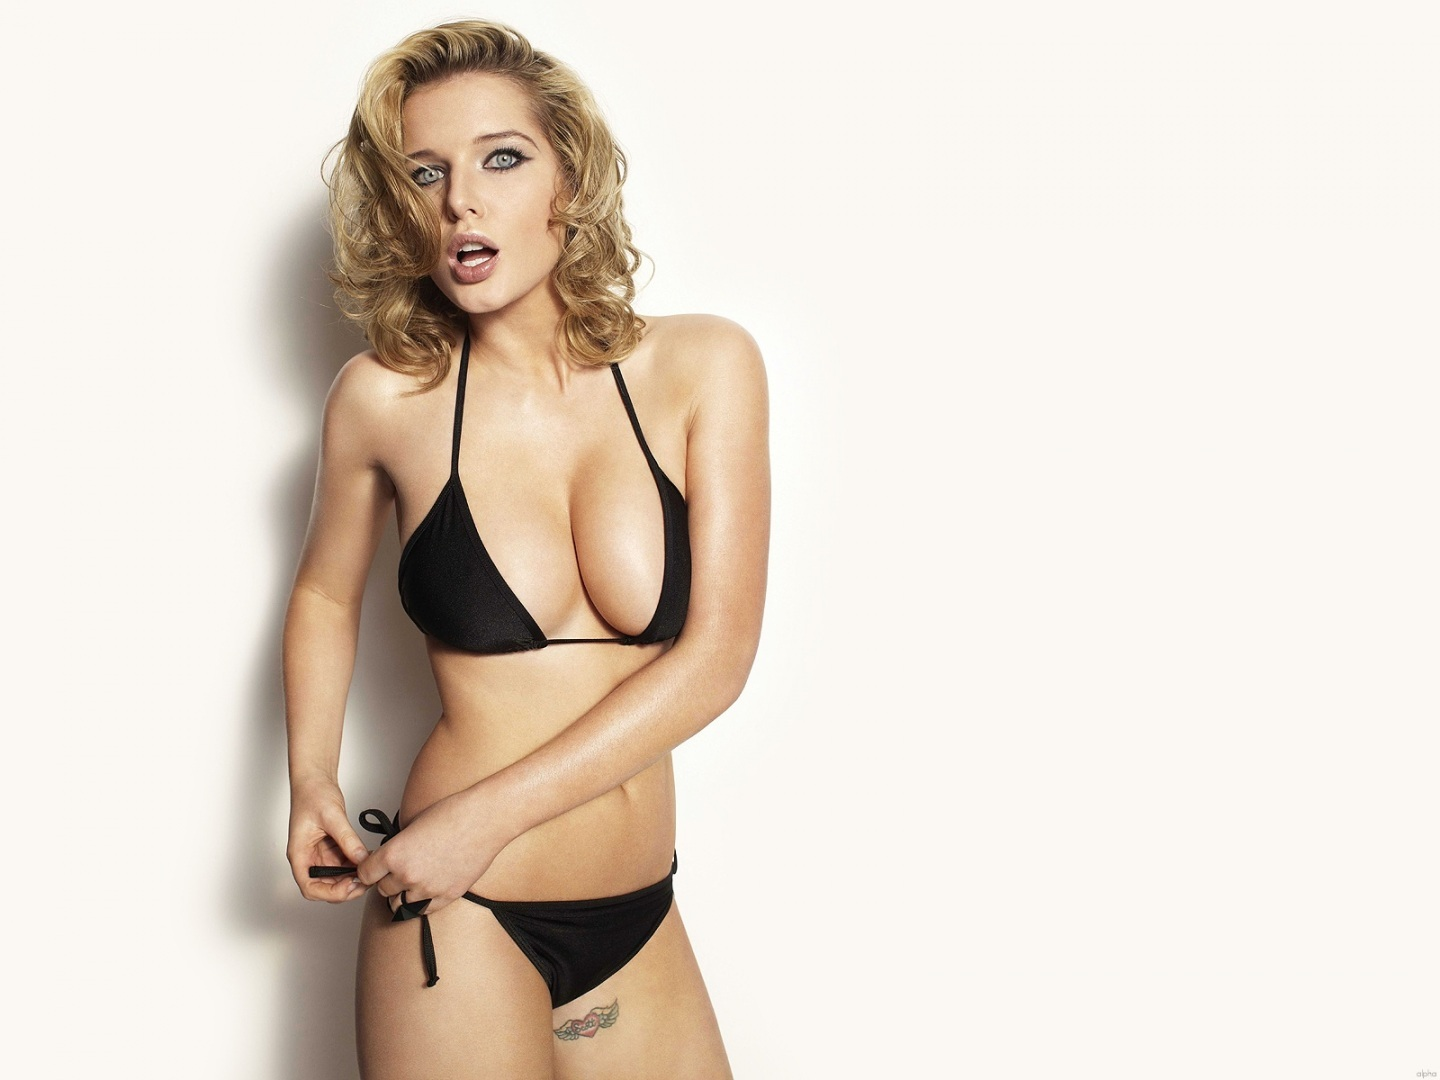 Helen Flanagan Black Bikini Photoshoot